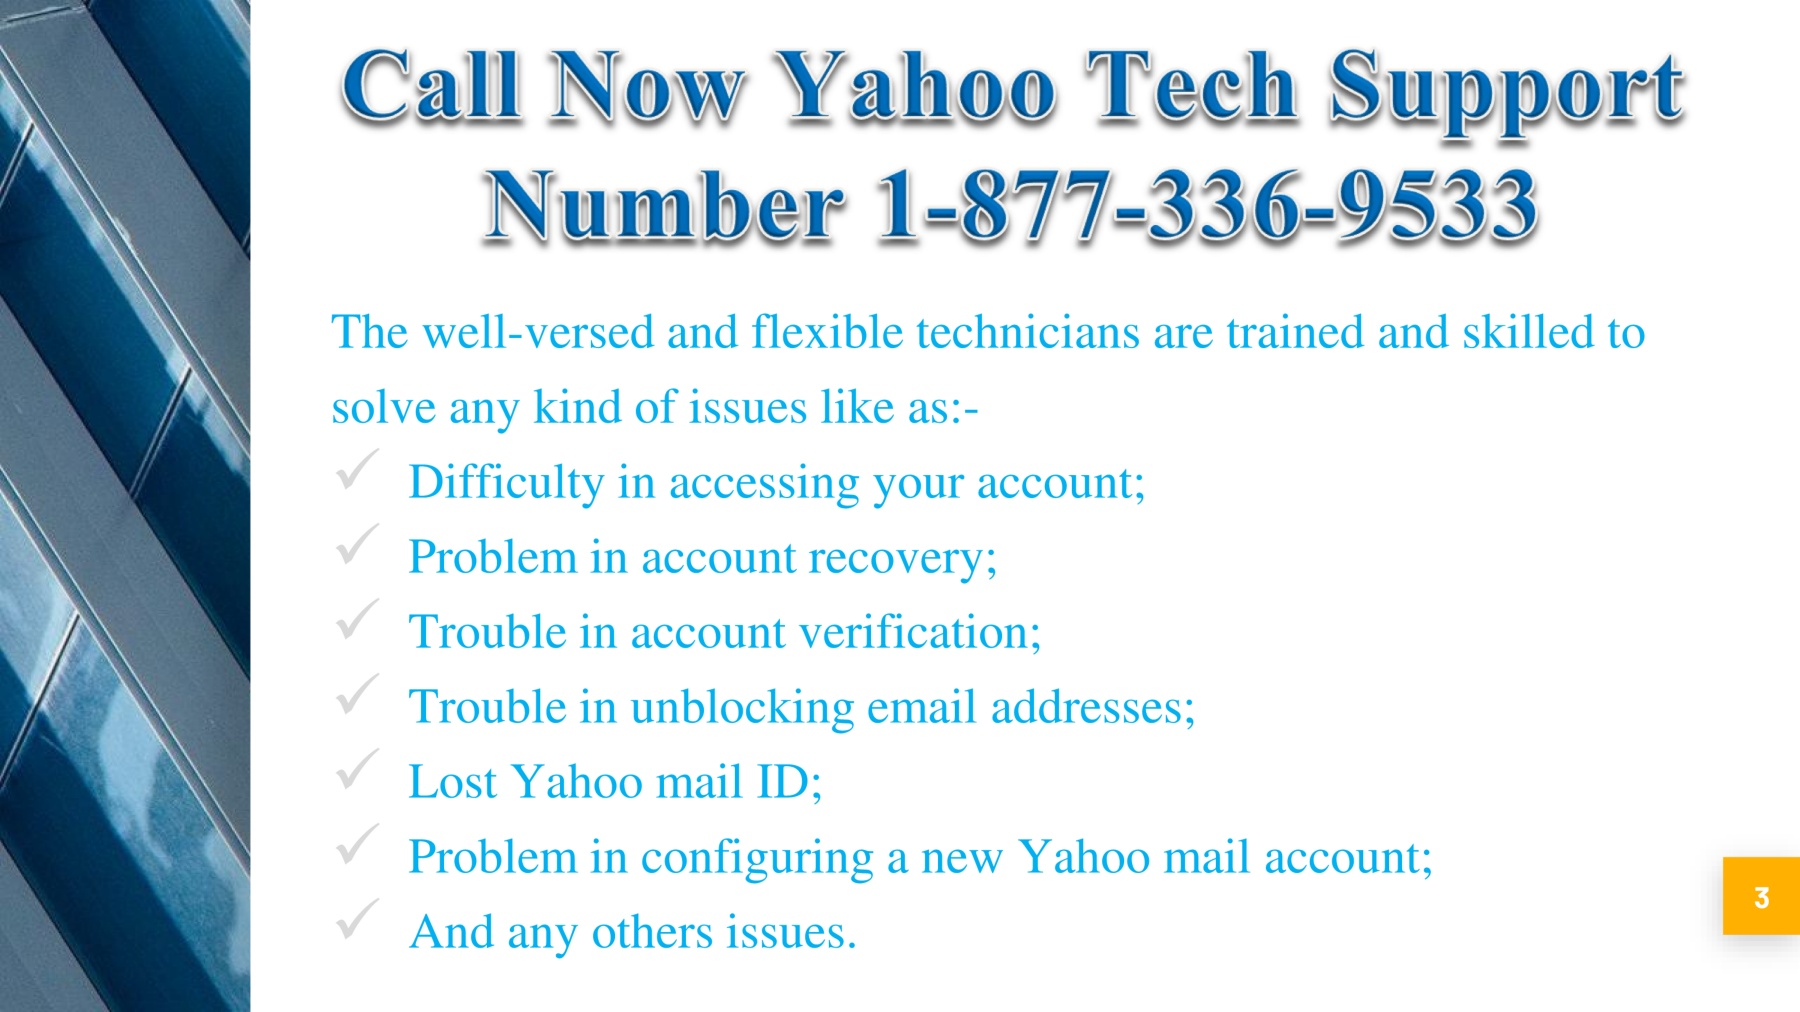 Contact Now 1 877 336 9533 Yahoo Phone Number Usa Pages 4 Text Version Anyflip